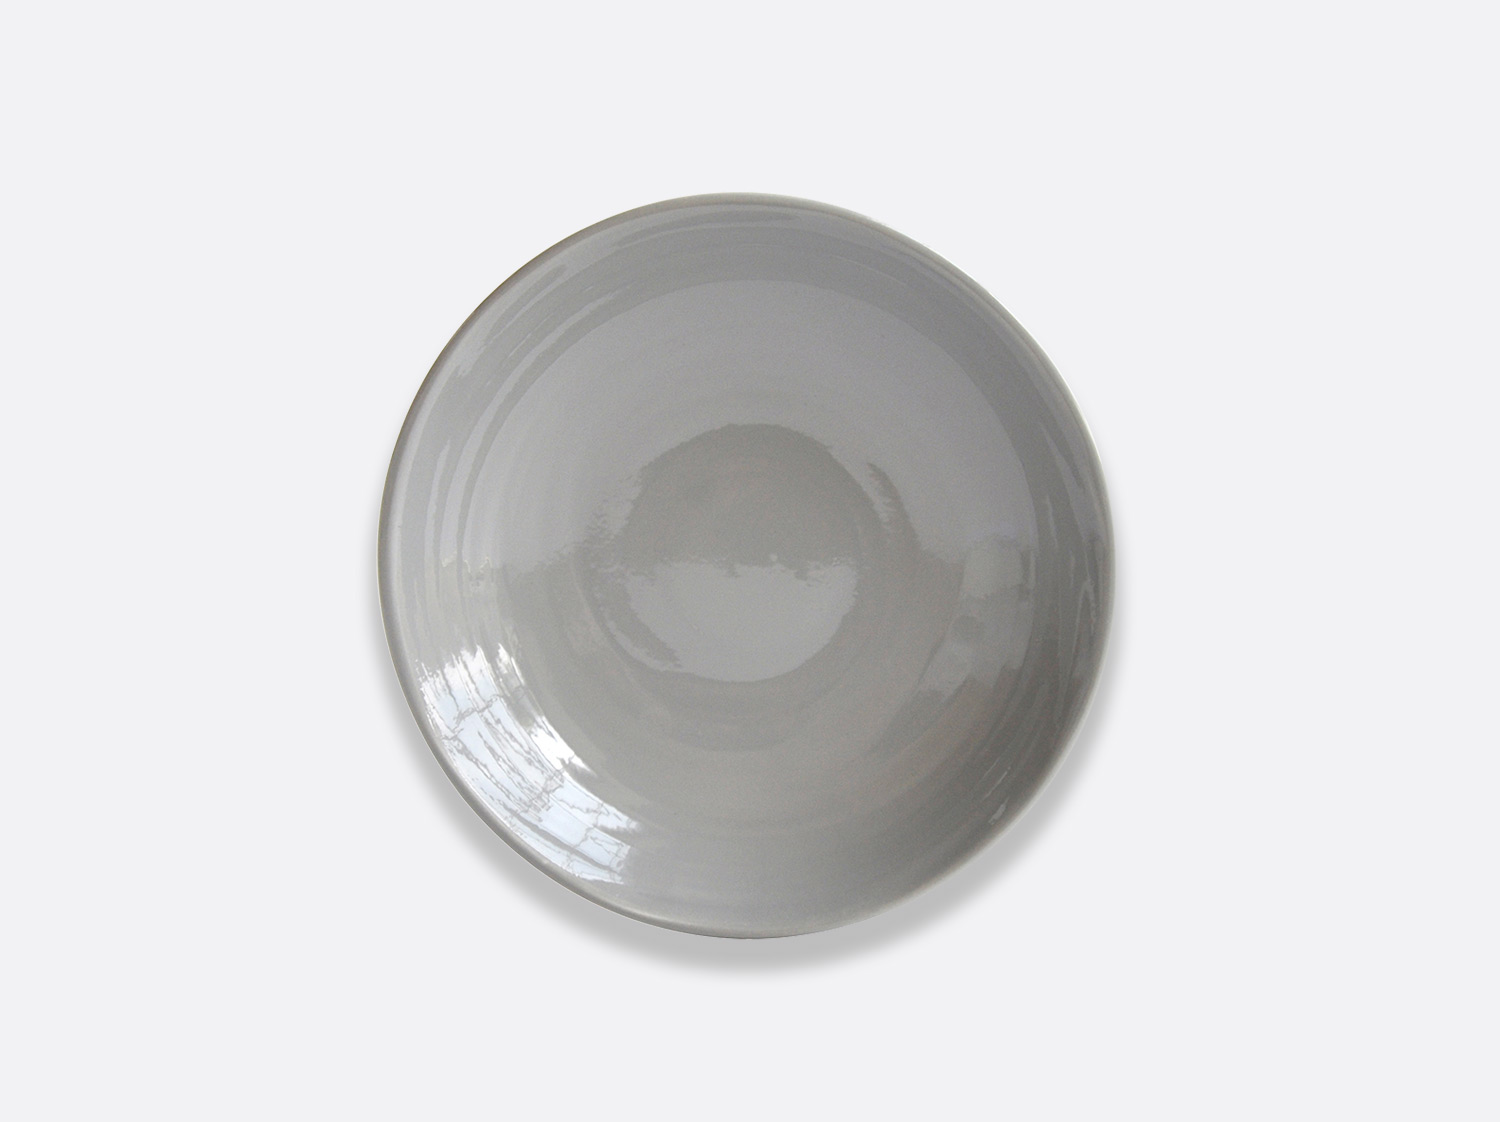 Assiette Gris 16 cm en porcelaine de la collection Origine gris Bernardaud